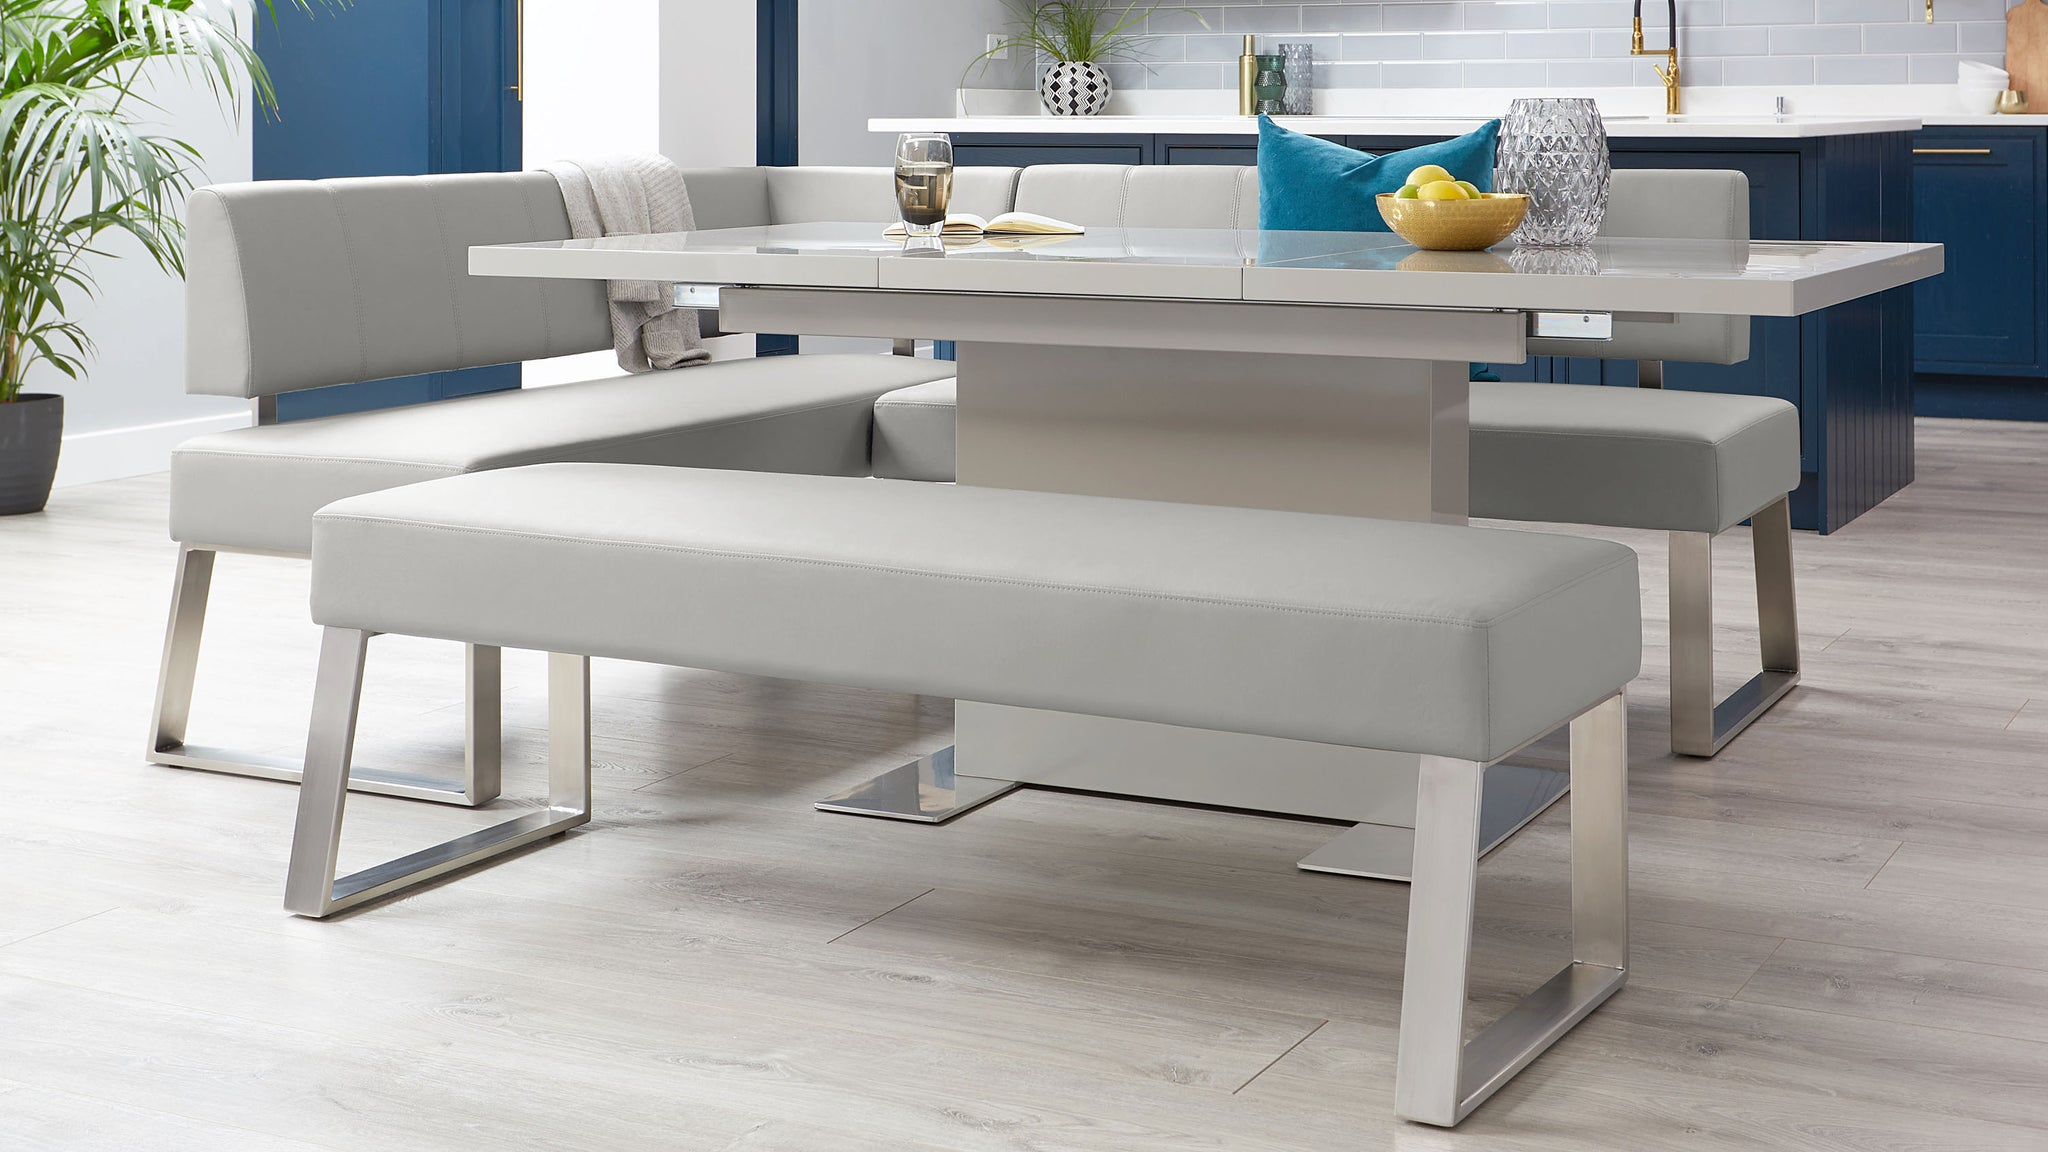 Dover 3 Seater Light Grey Faux Leather Dining Bench